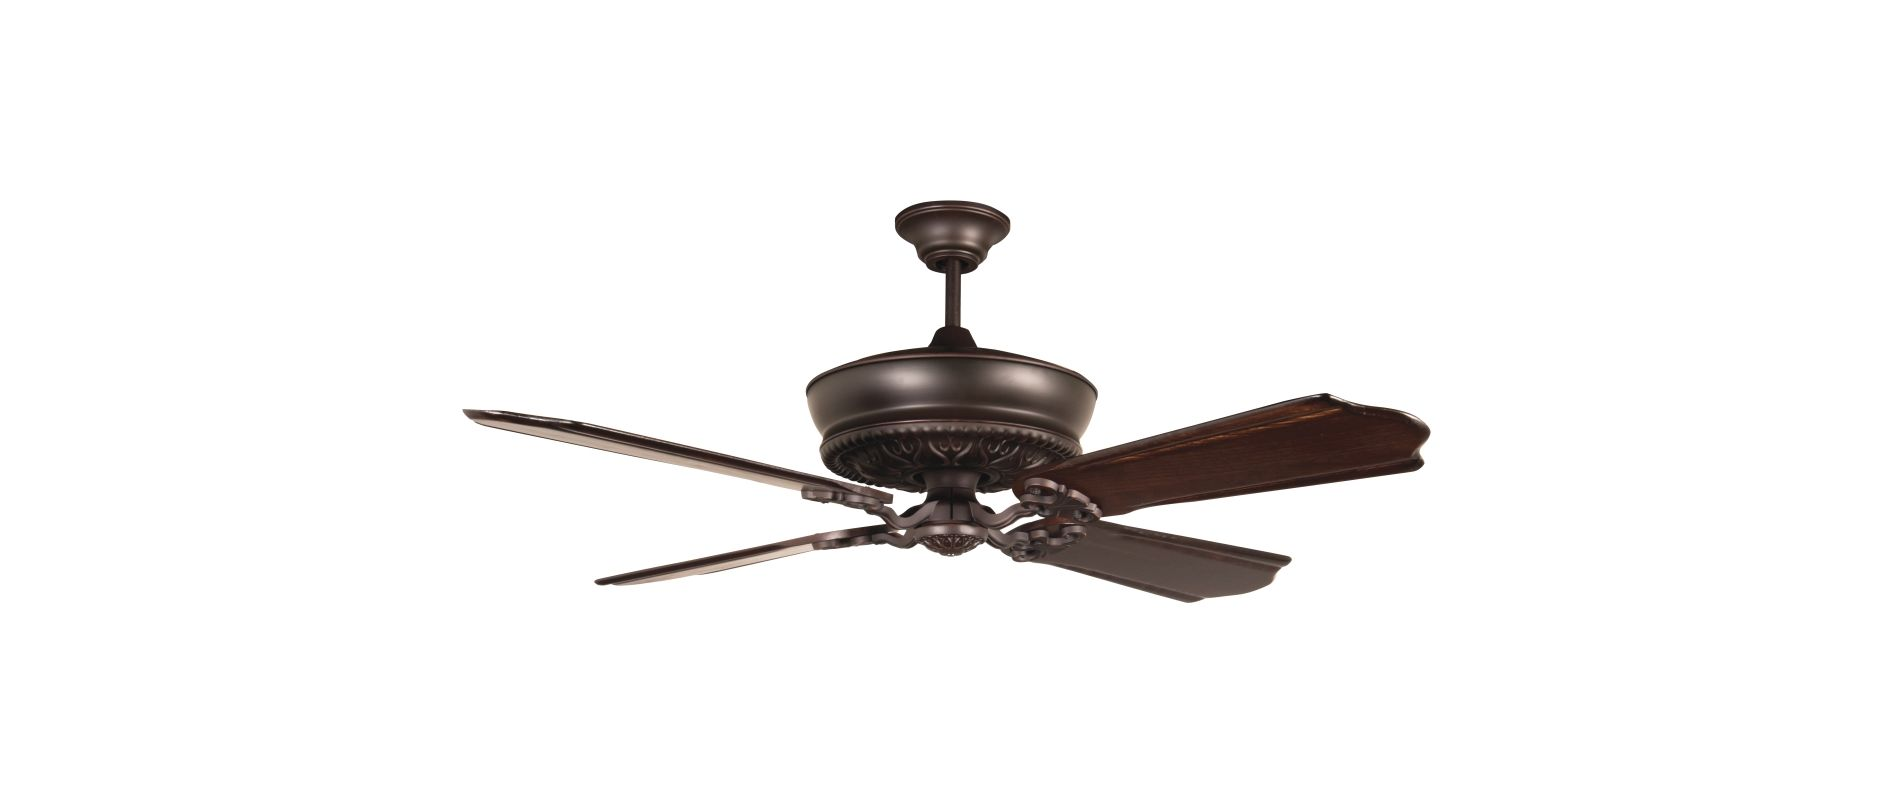 "Craftmade K11234 Monroe 56"" 5 Blade Indoor Ceiling Fan with Blades"